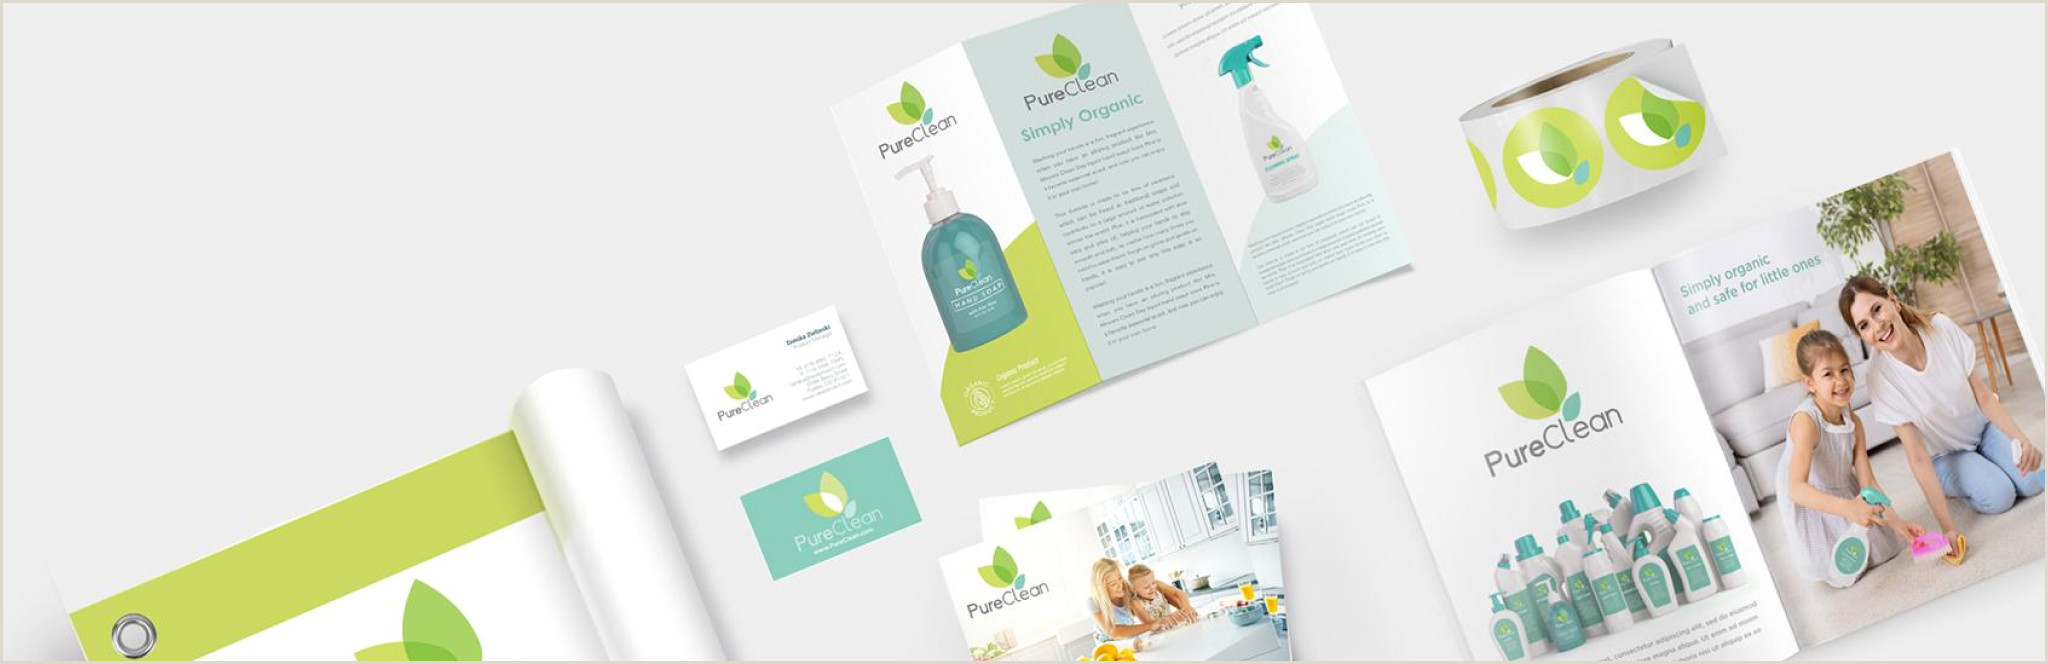 Best Business Cards To Get Printplace High Quality Line Printing Services